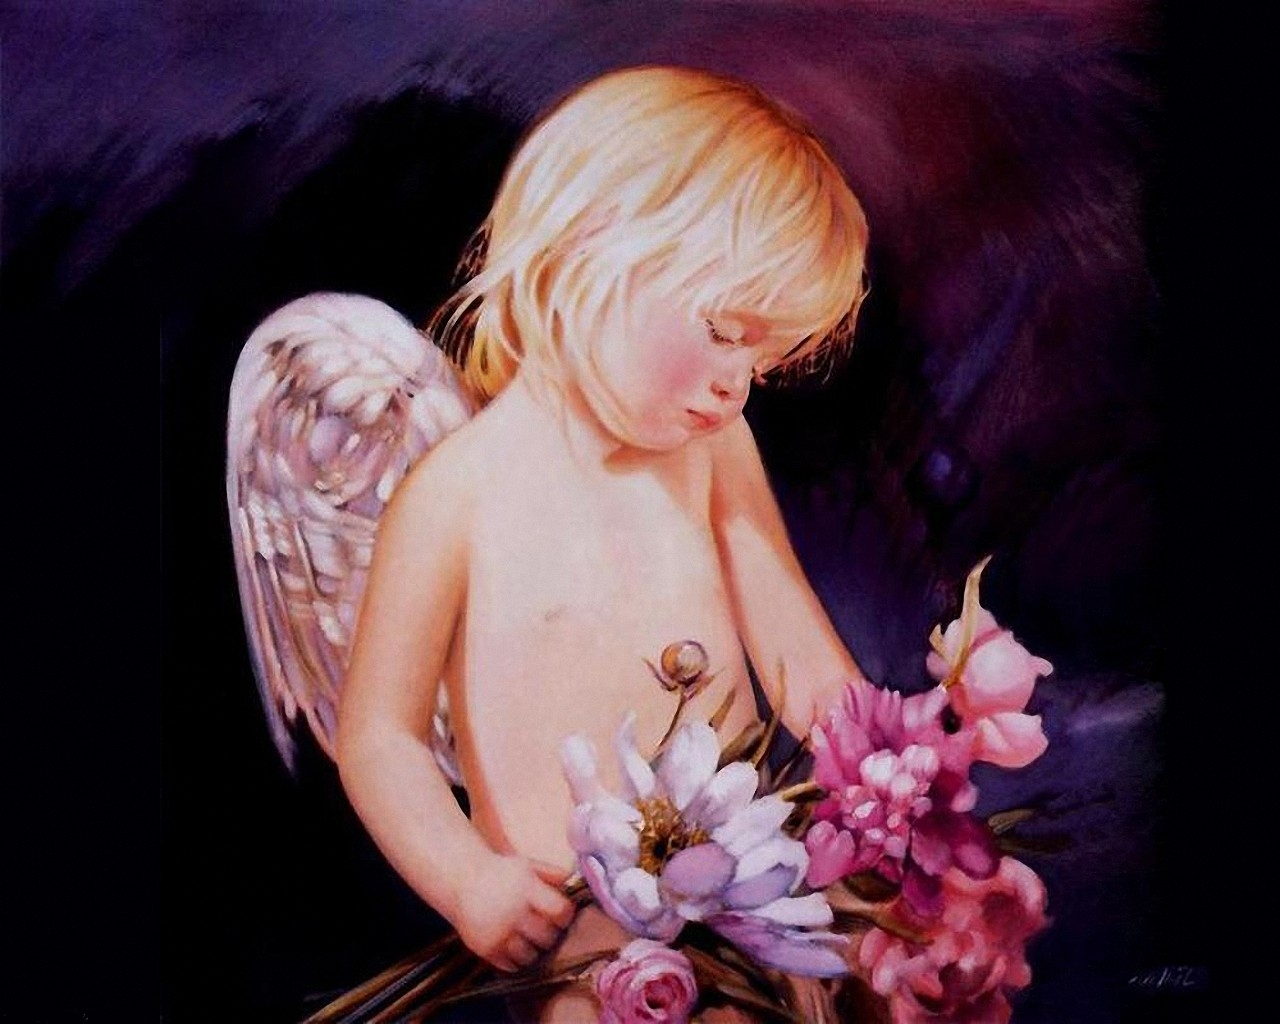 http://ru.wallfon.com/walls/fantasy/children-are-angels-nancy-noel-18613.jpg